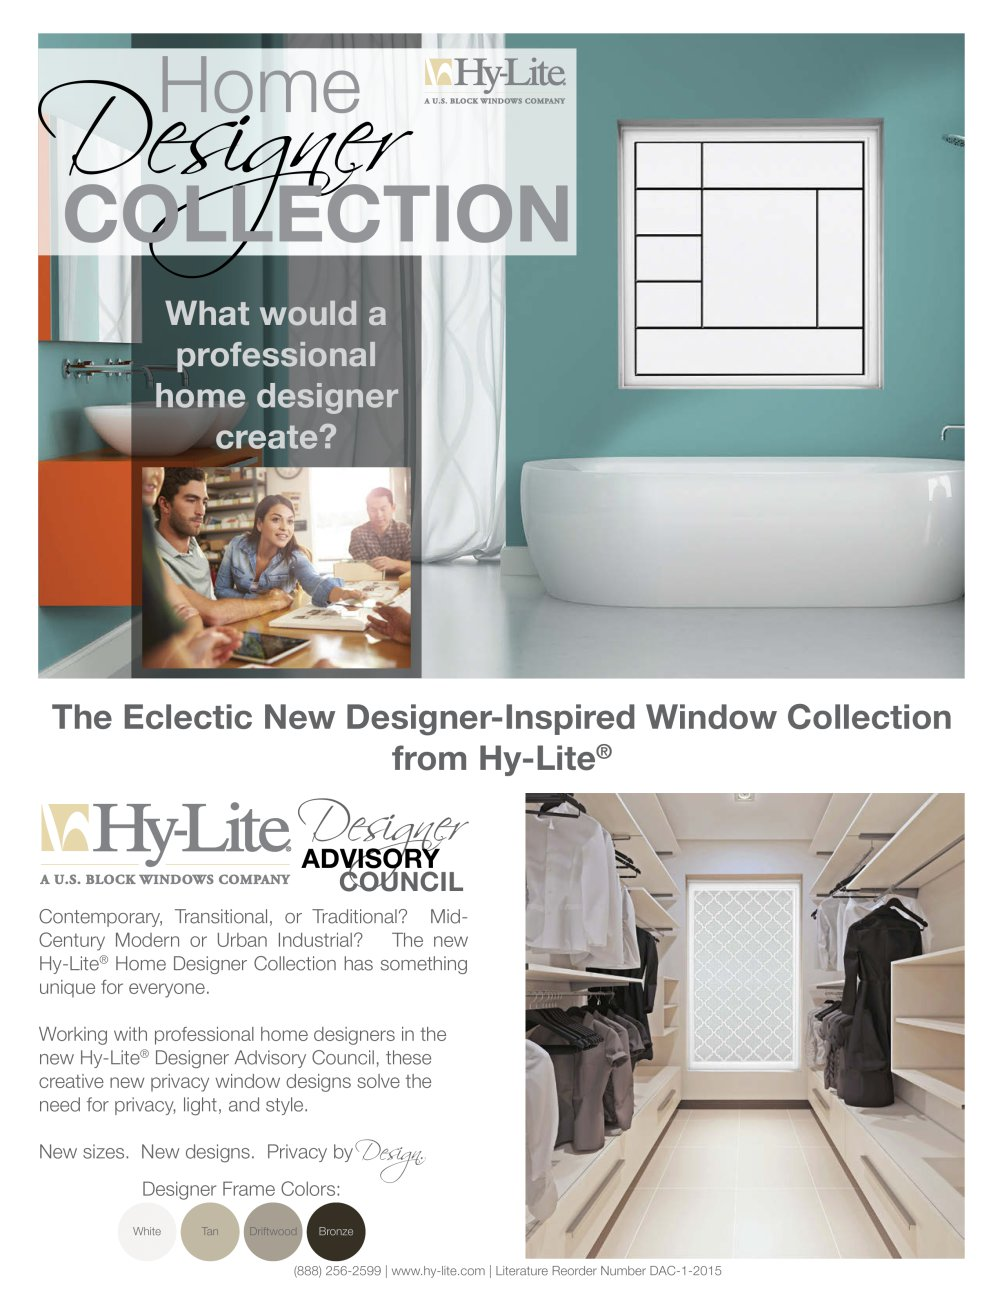 Home Designer Collection 1 2 PagesHome Designer Collection HY LITE PDF  Catalogues . Home Designer Collection